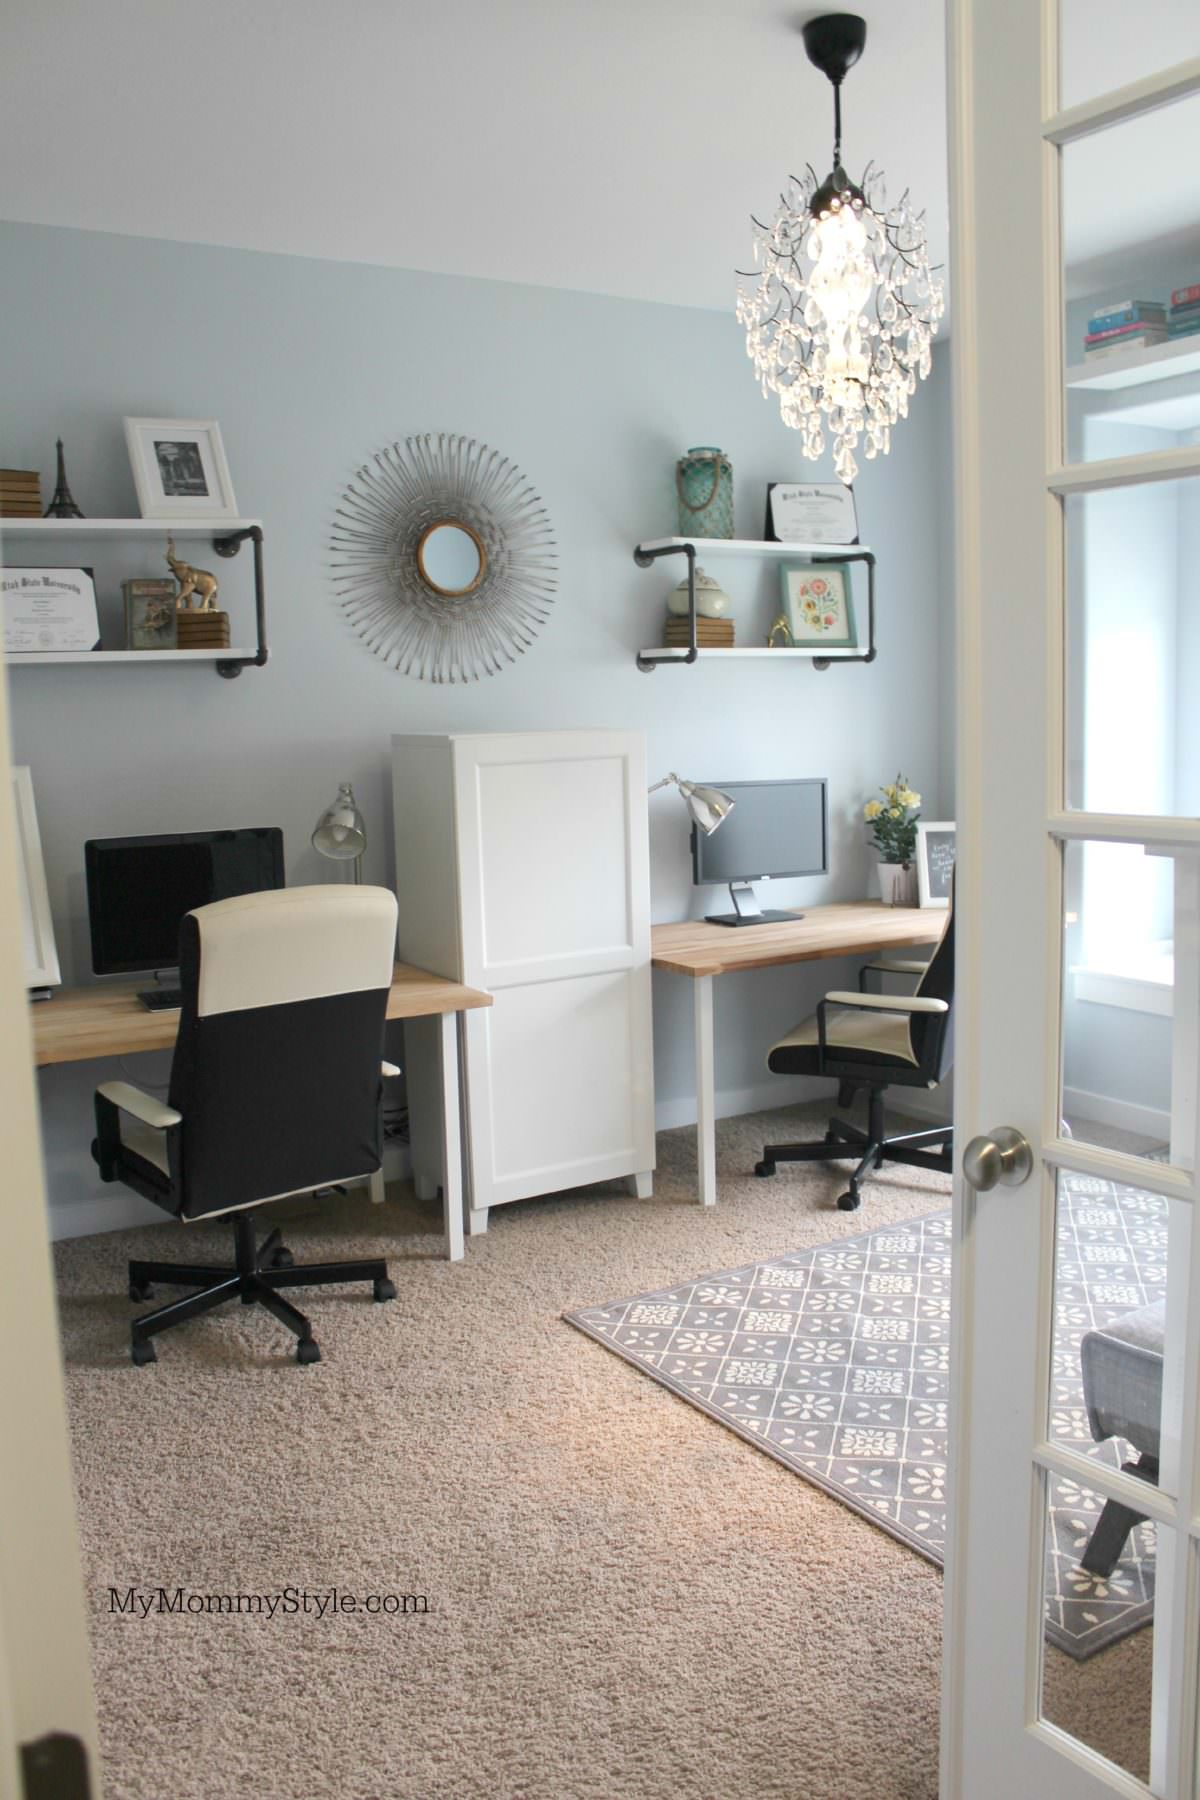 family office and guest room, IKEA, mymommystyle.com, Modifyink, family office, home office, after shot